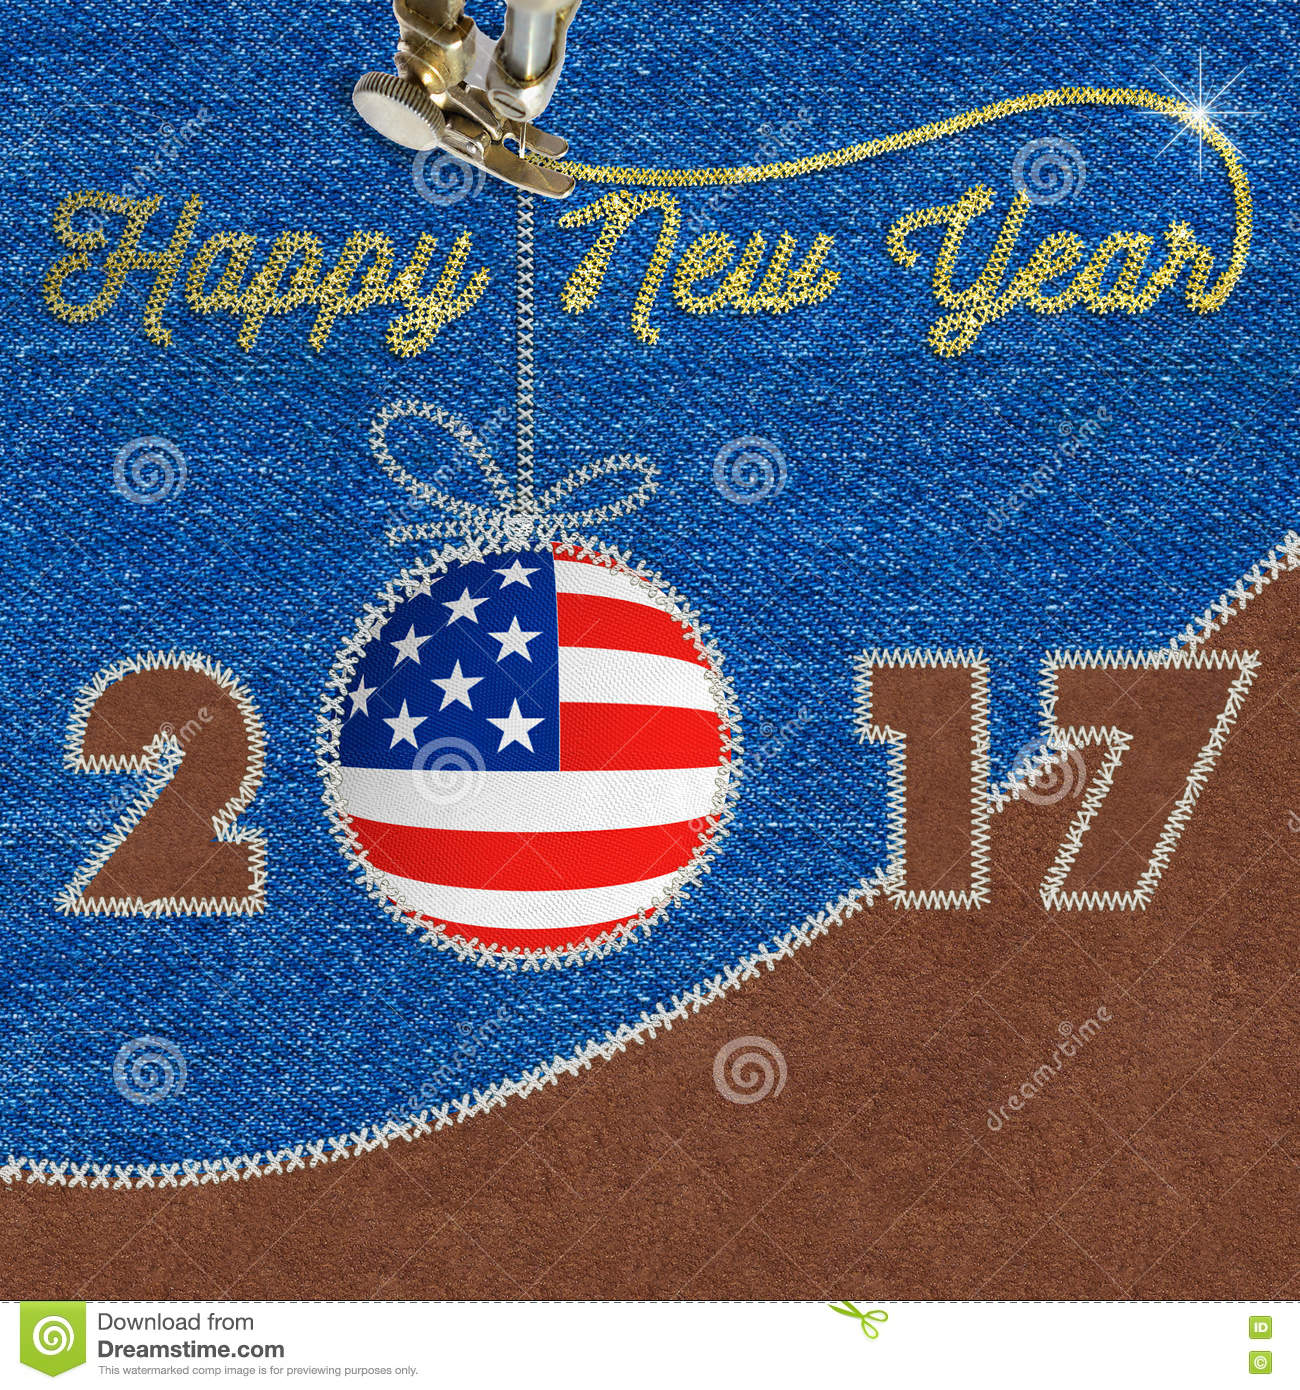 Happy new year 2017 american flag on jeans background sewing fabric happy new year design with american flag on jeans sewing fabric applique to use for greetings card flyers dinner invitation christmas meeting events and m4hsunfo